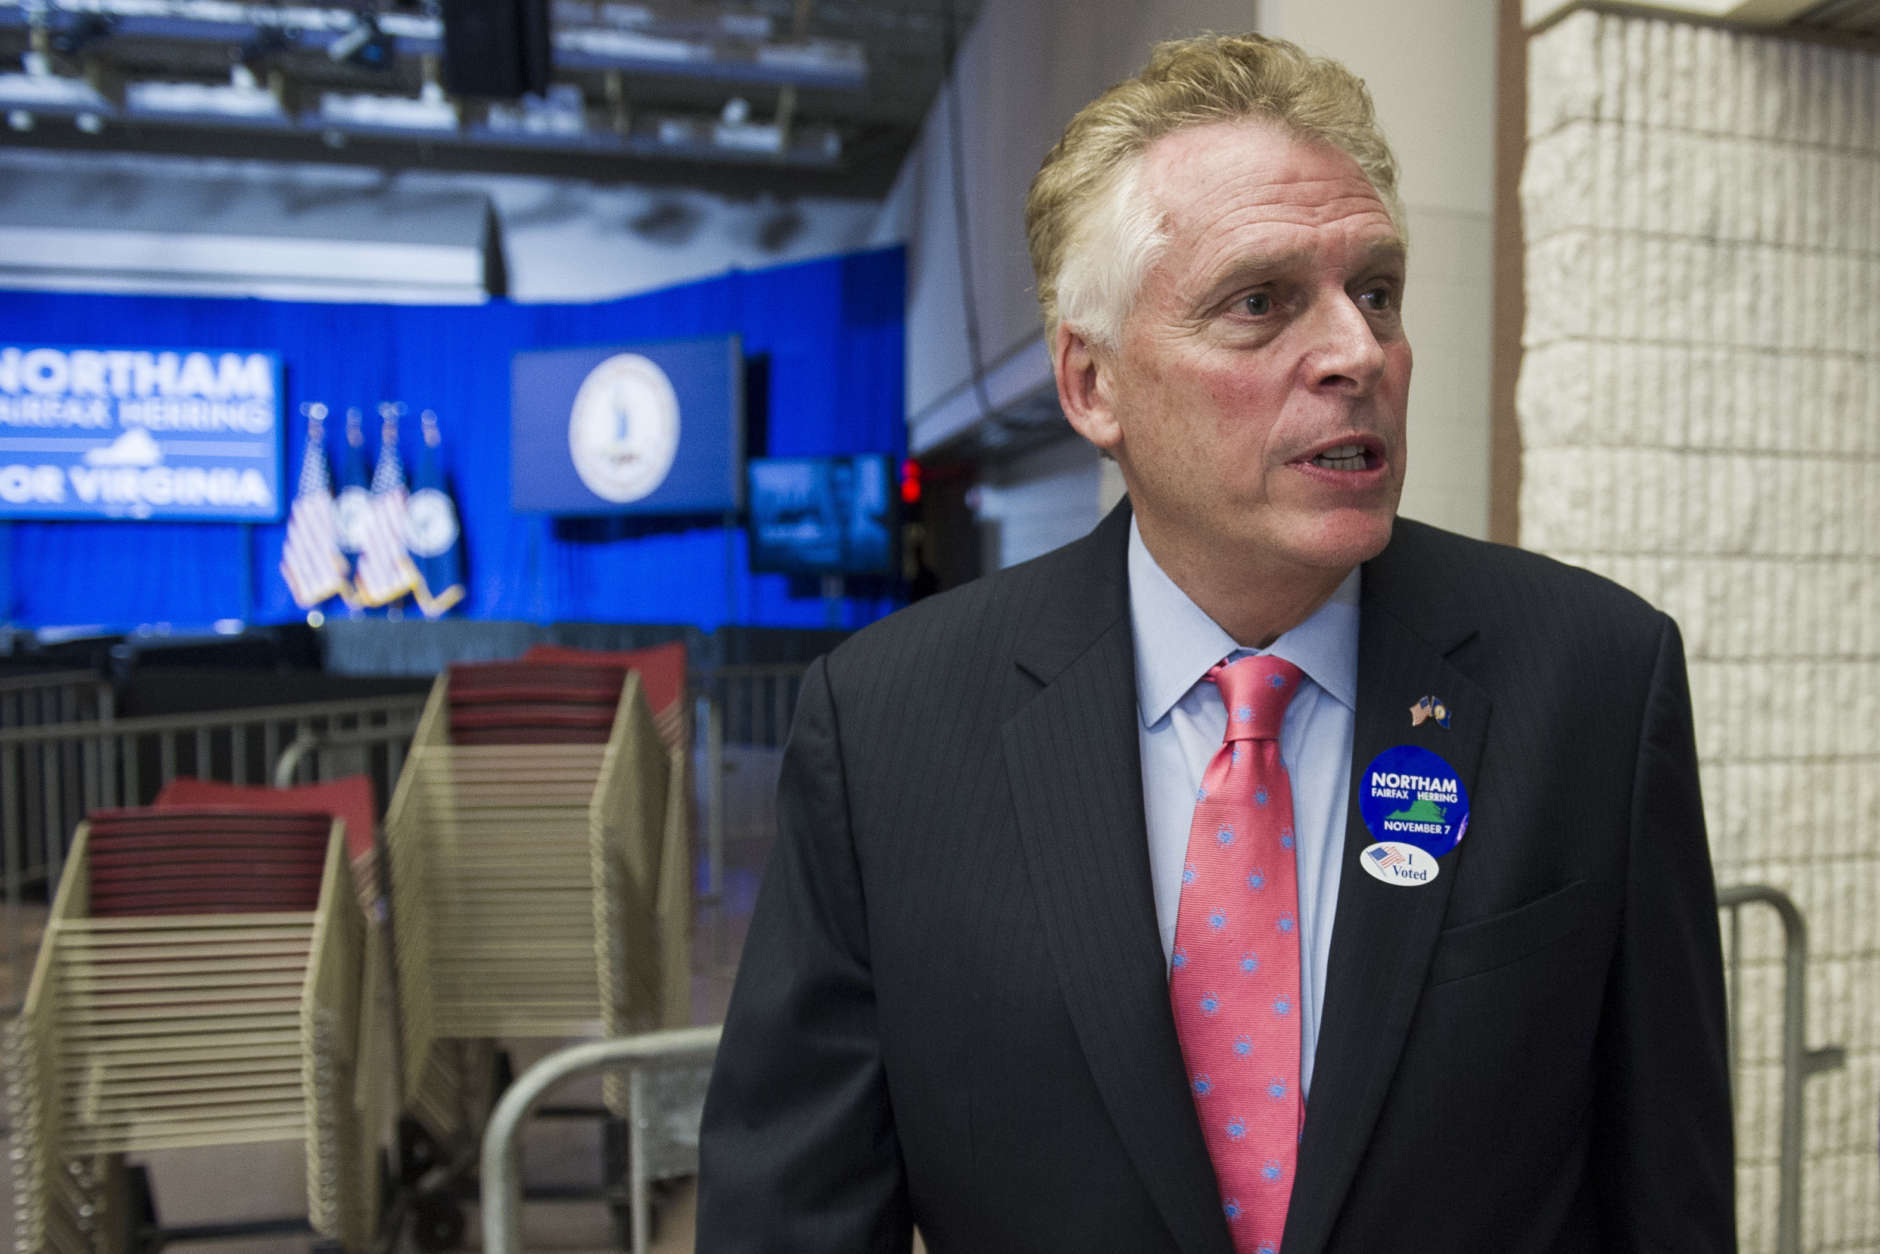 Virginia Gov. Terry McAuliffe waits to be interviewed by a reporter at the Northam For Governor election night party at George Mason University in Fairfax, Va., Tuesday, Nov. 7, 2017. (AP Photo/Cliff Owen)